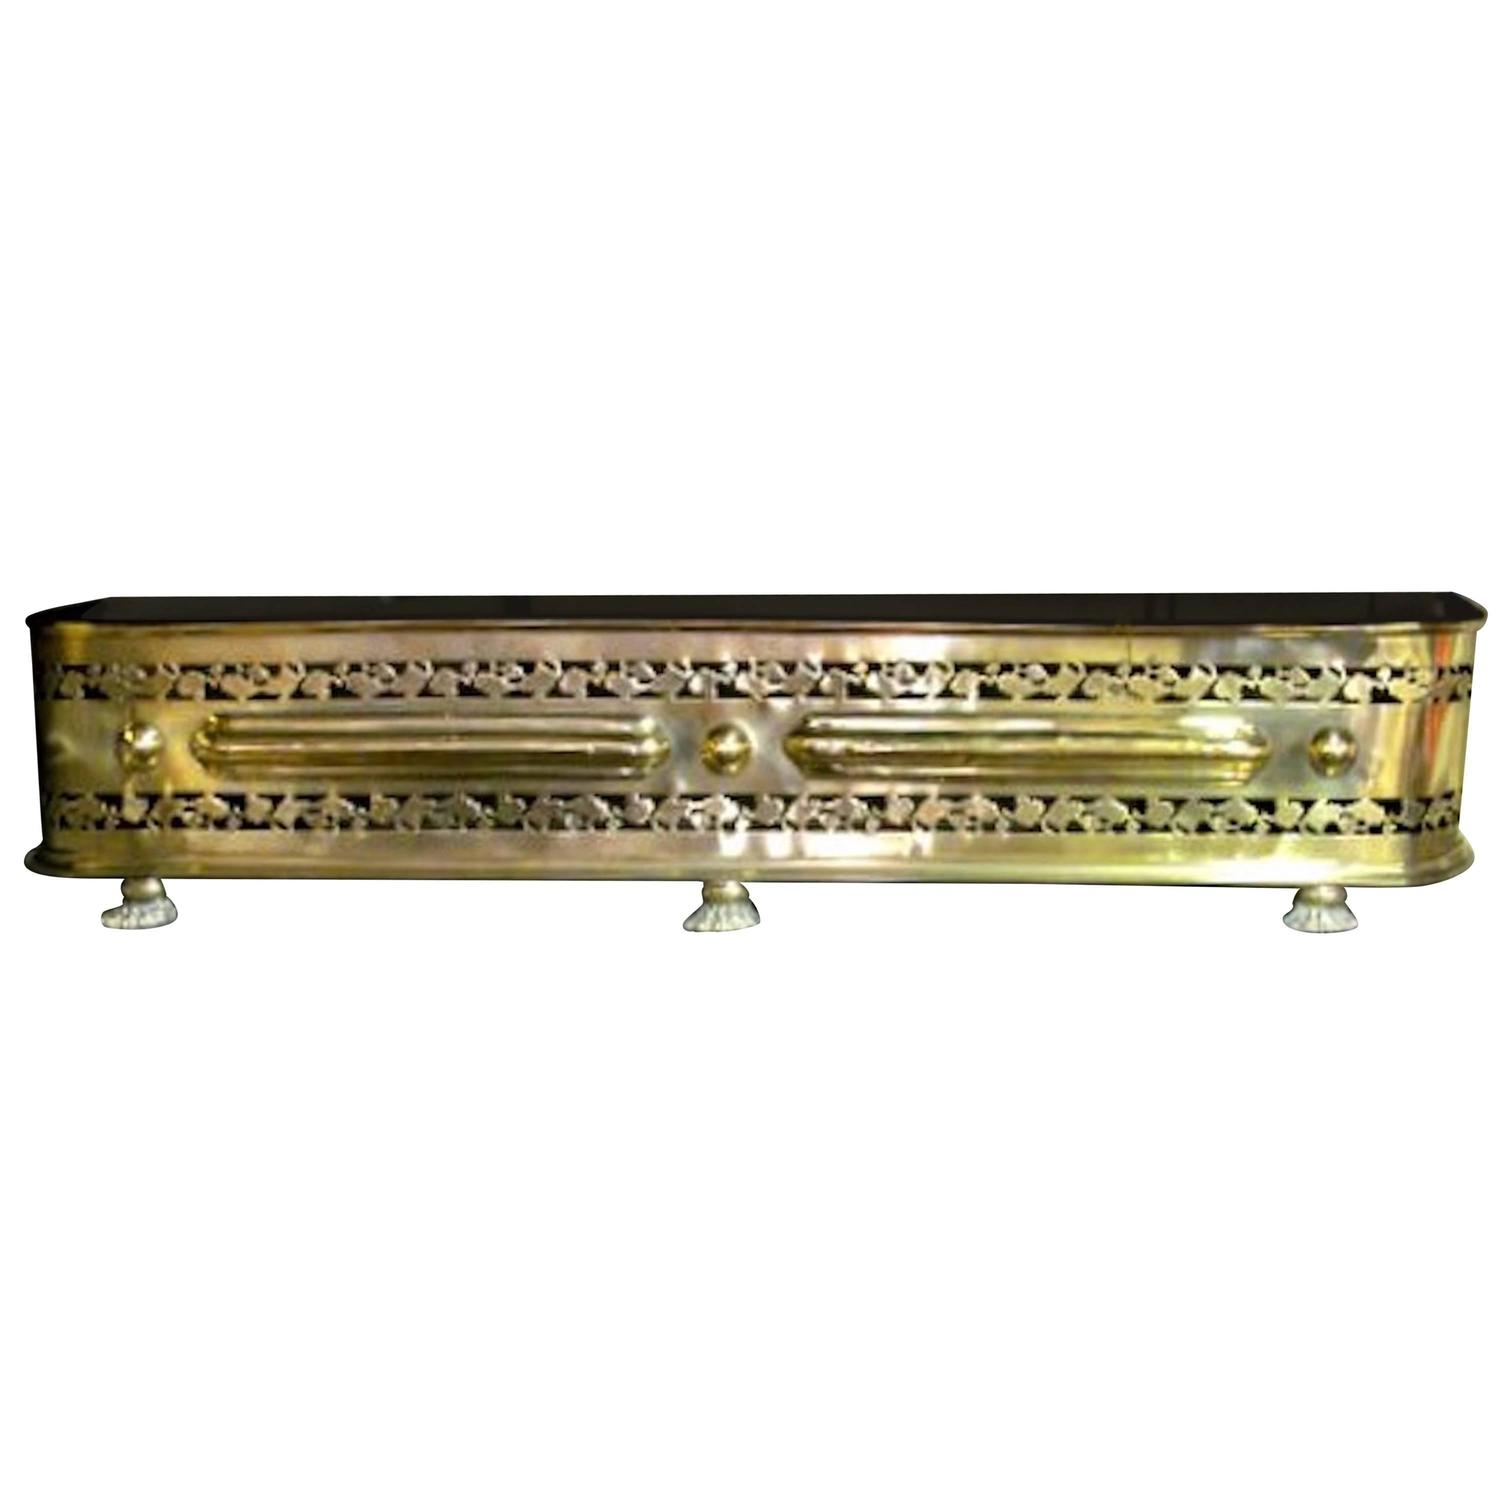 Antique English Pierced Brass George Iii Fireplace Fender For Sale At 1stdibs